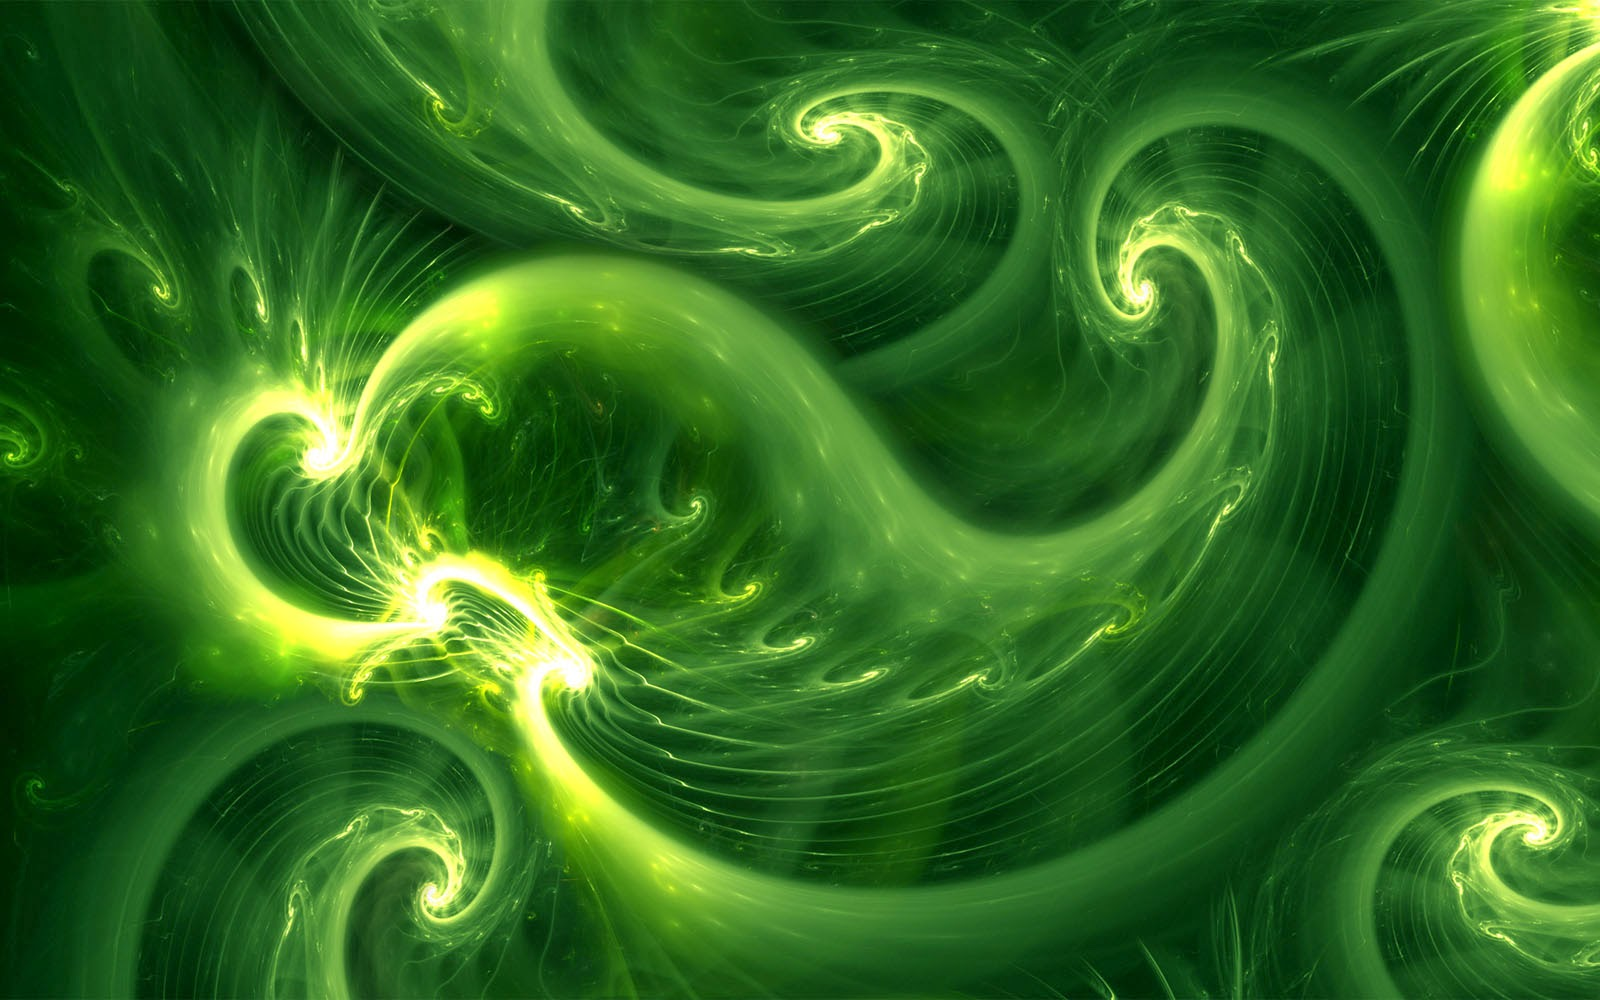 wallpapers: Abstract Green Wallpapers